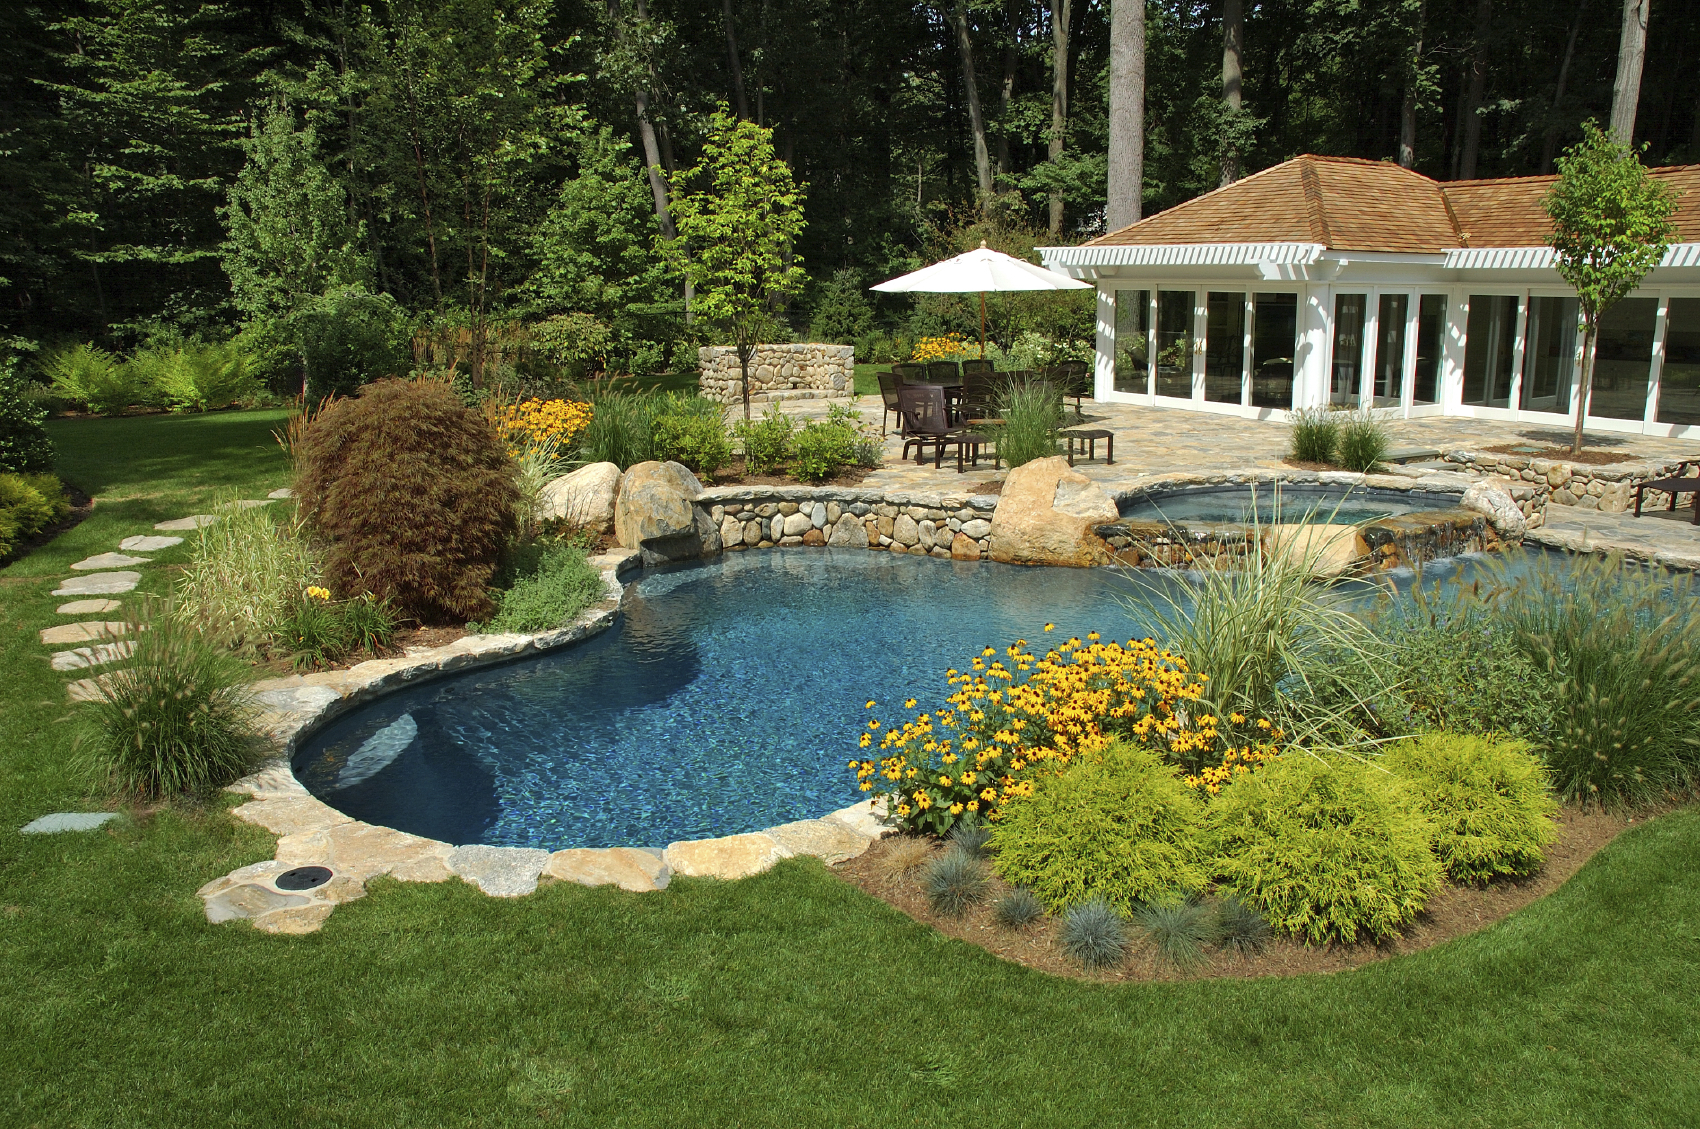 Backyard Landscaping Ideas Around Pools : Cape cod swimming pool homeowners resource guide